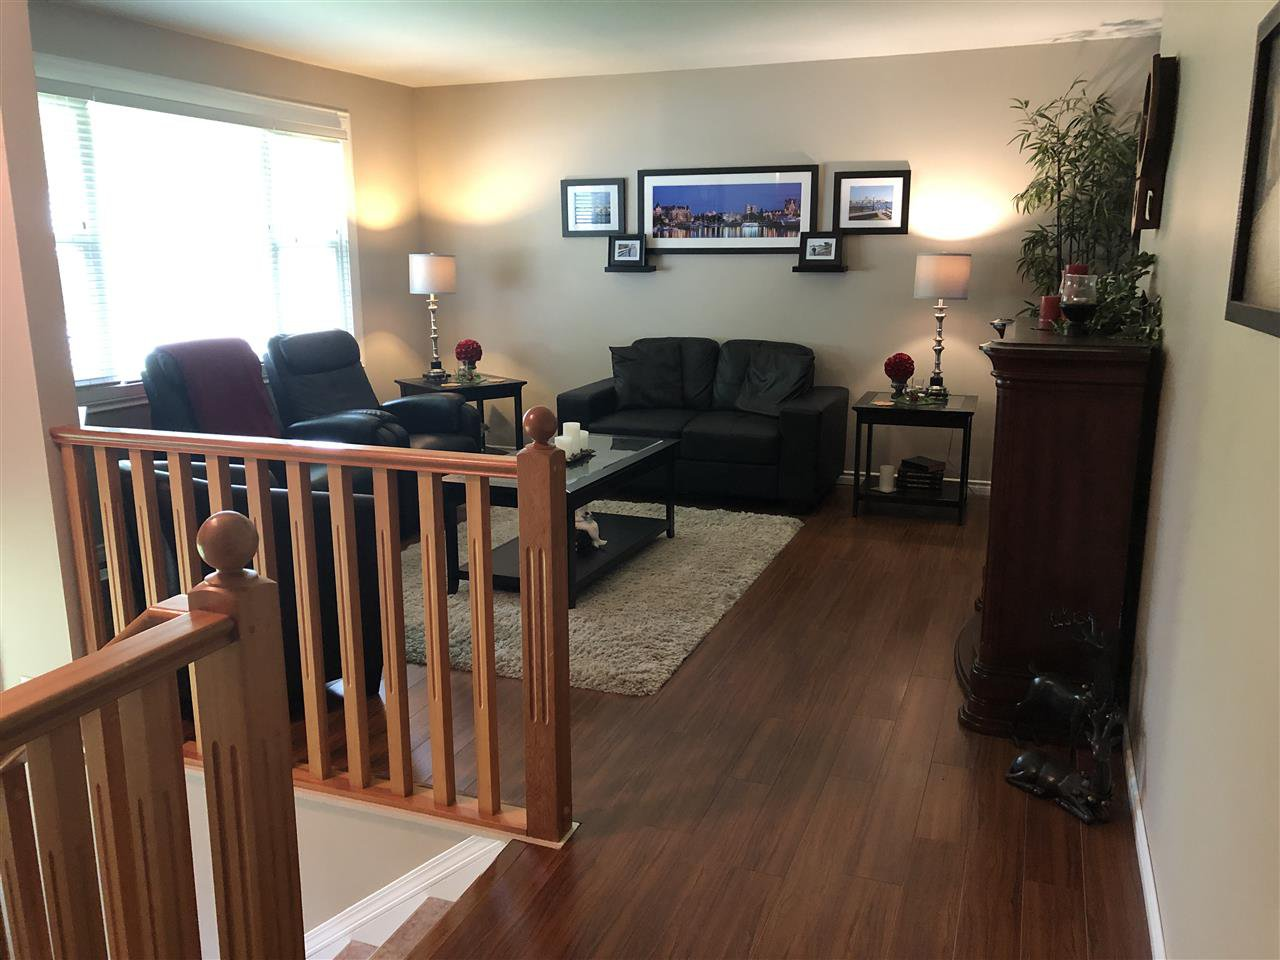 Photo 6: Photos: 1270 LEWIS Drive in Quesnel: Quesnel - Town House for sale (Quesnel (Zone 28))  : MLS®# R2478328